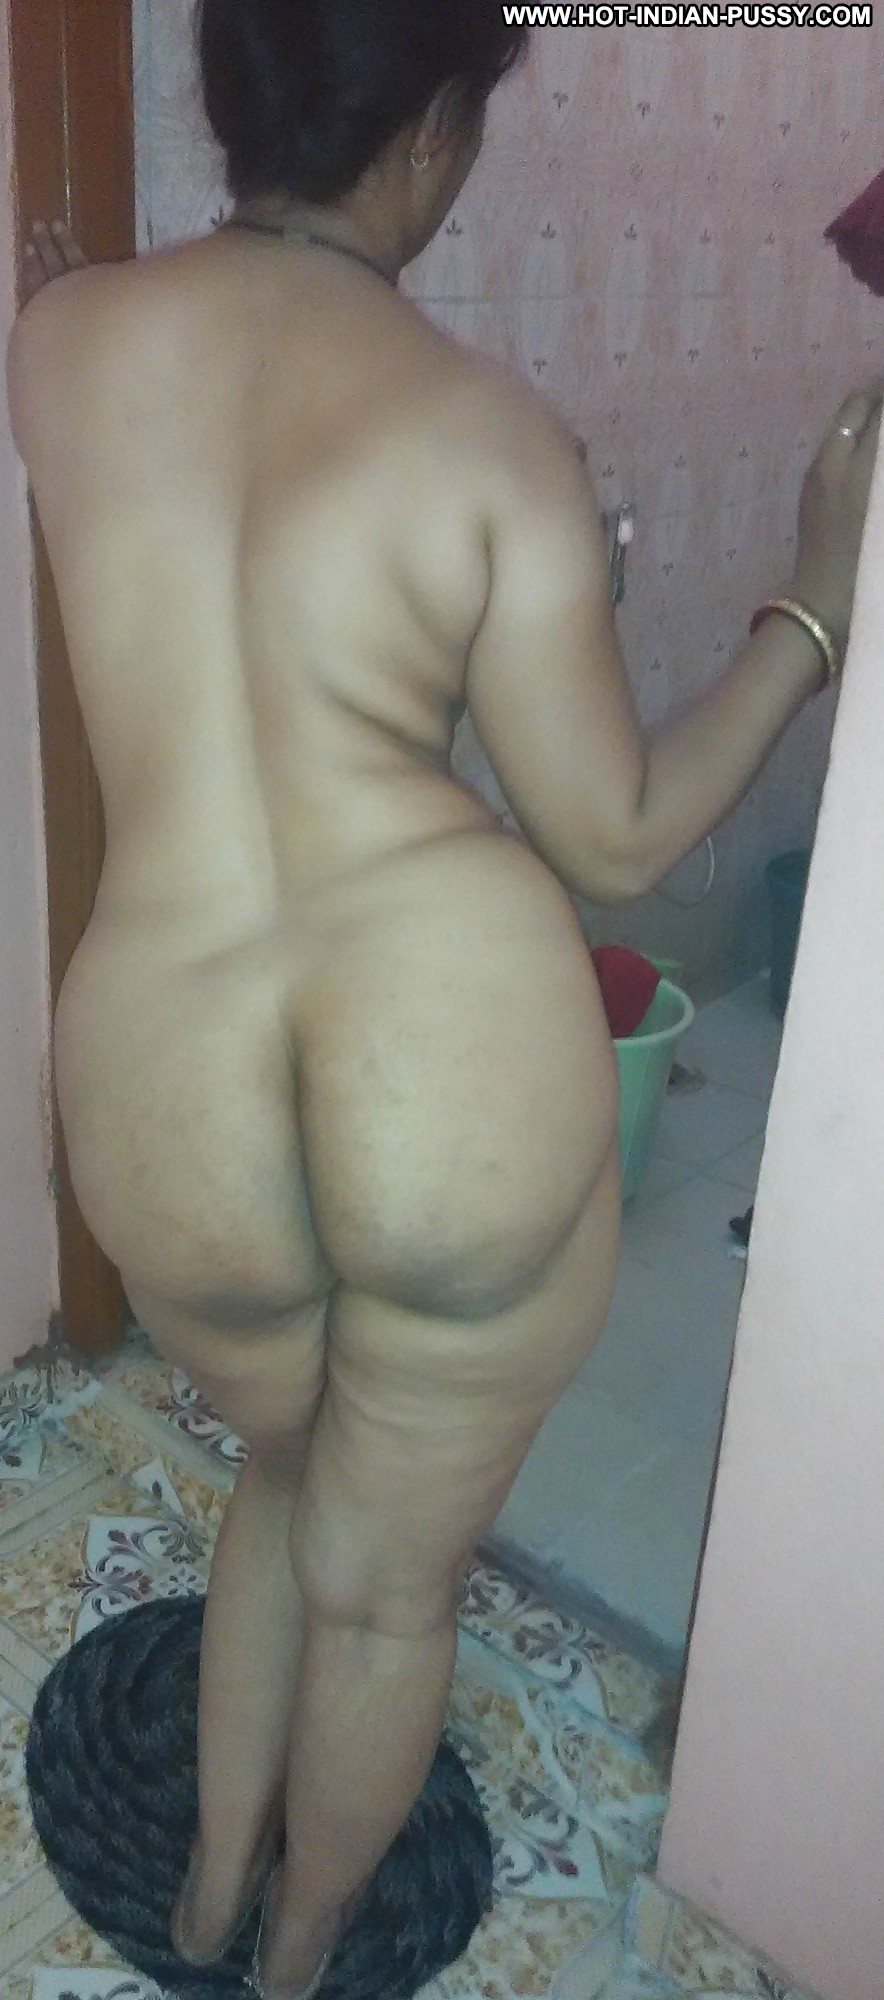 Tamil porn free video